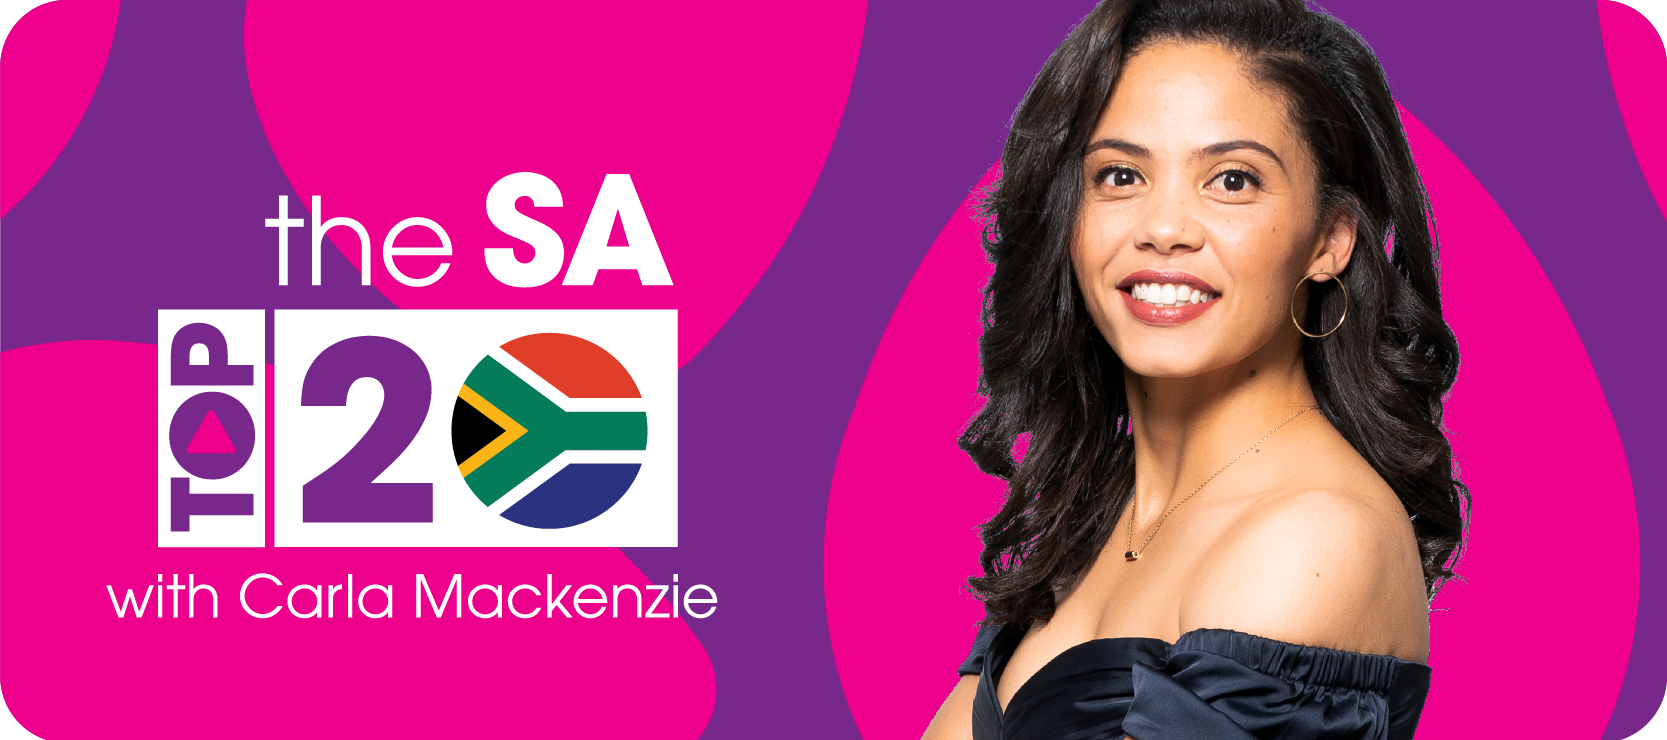 Chart-The SA Top 20 with Carla Mackenzie2021.png